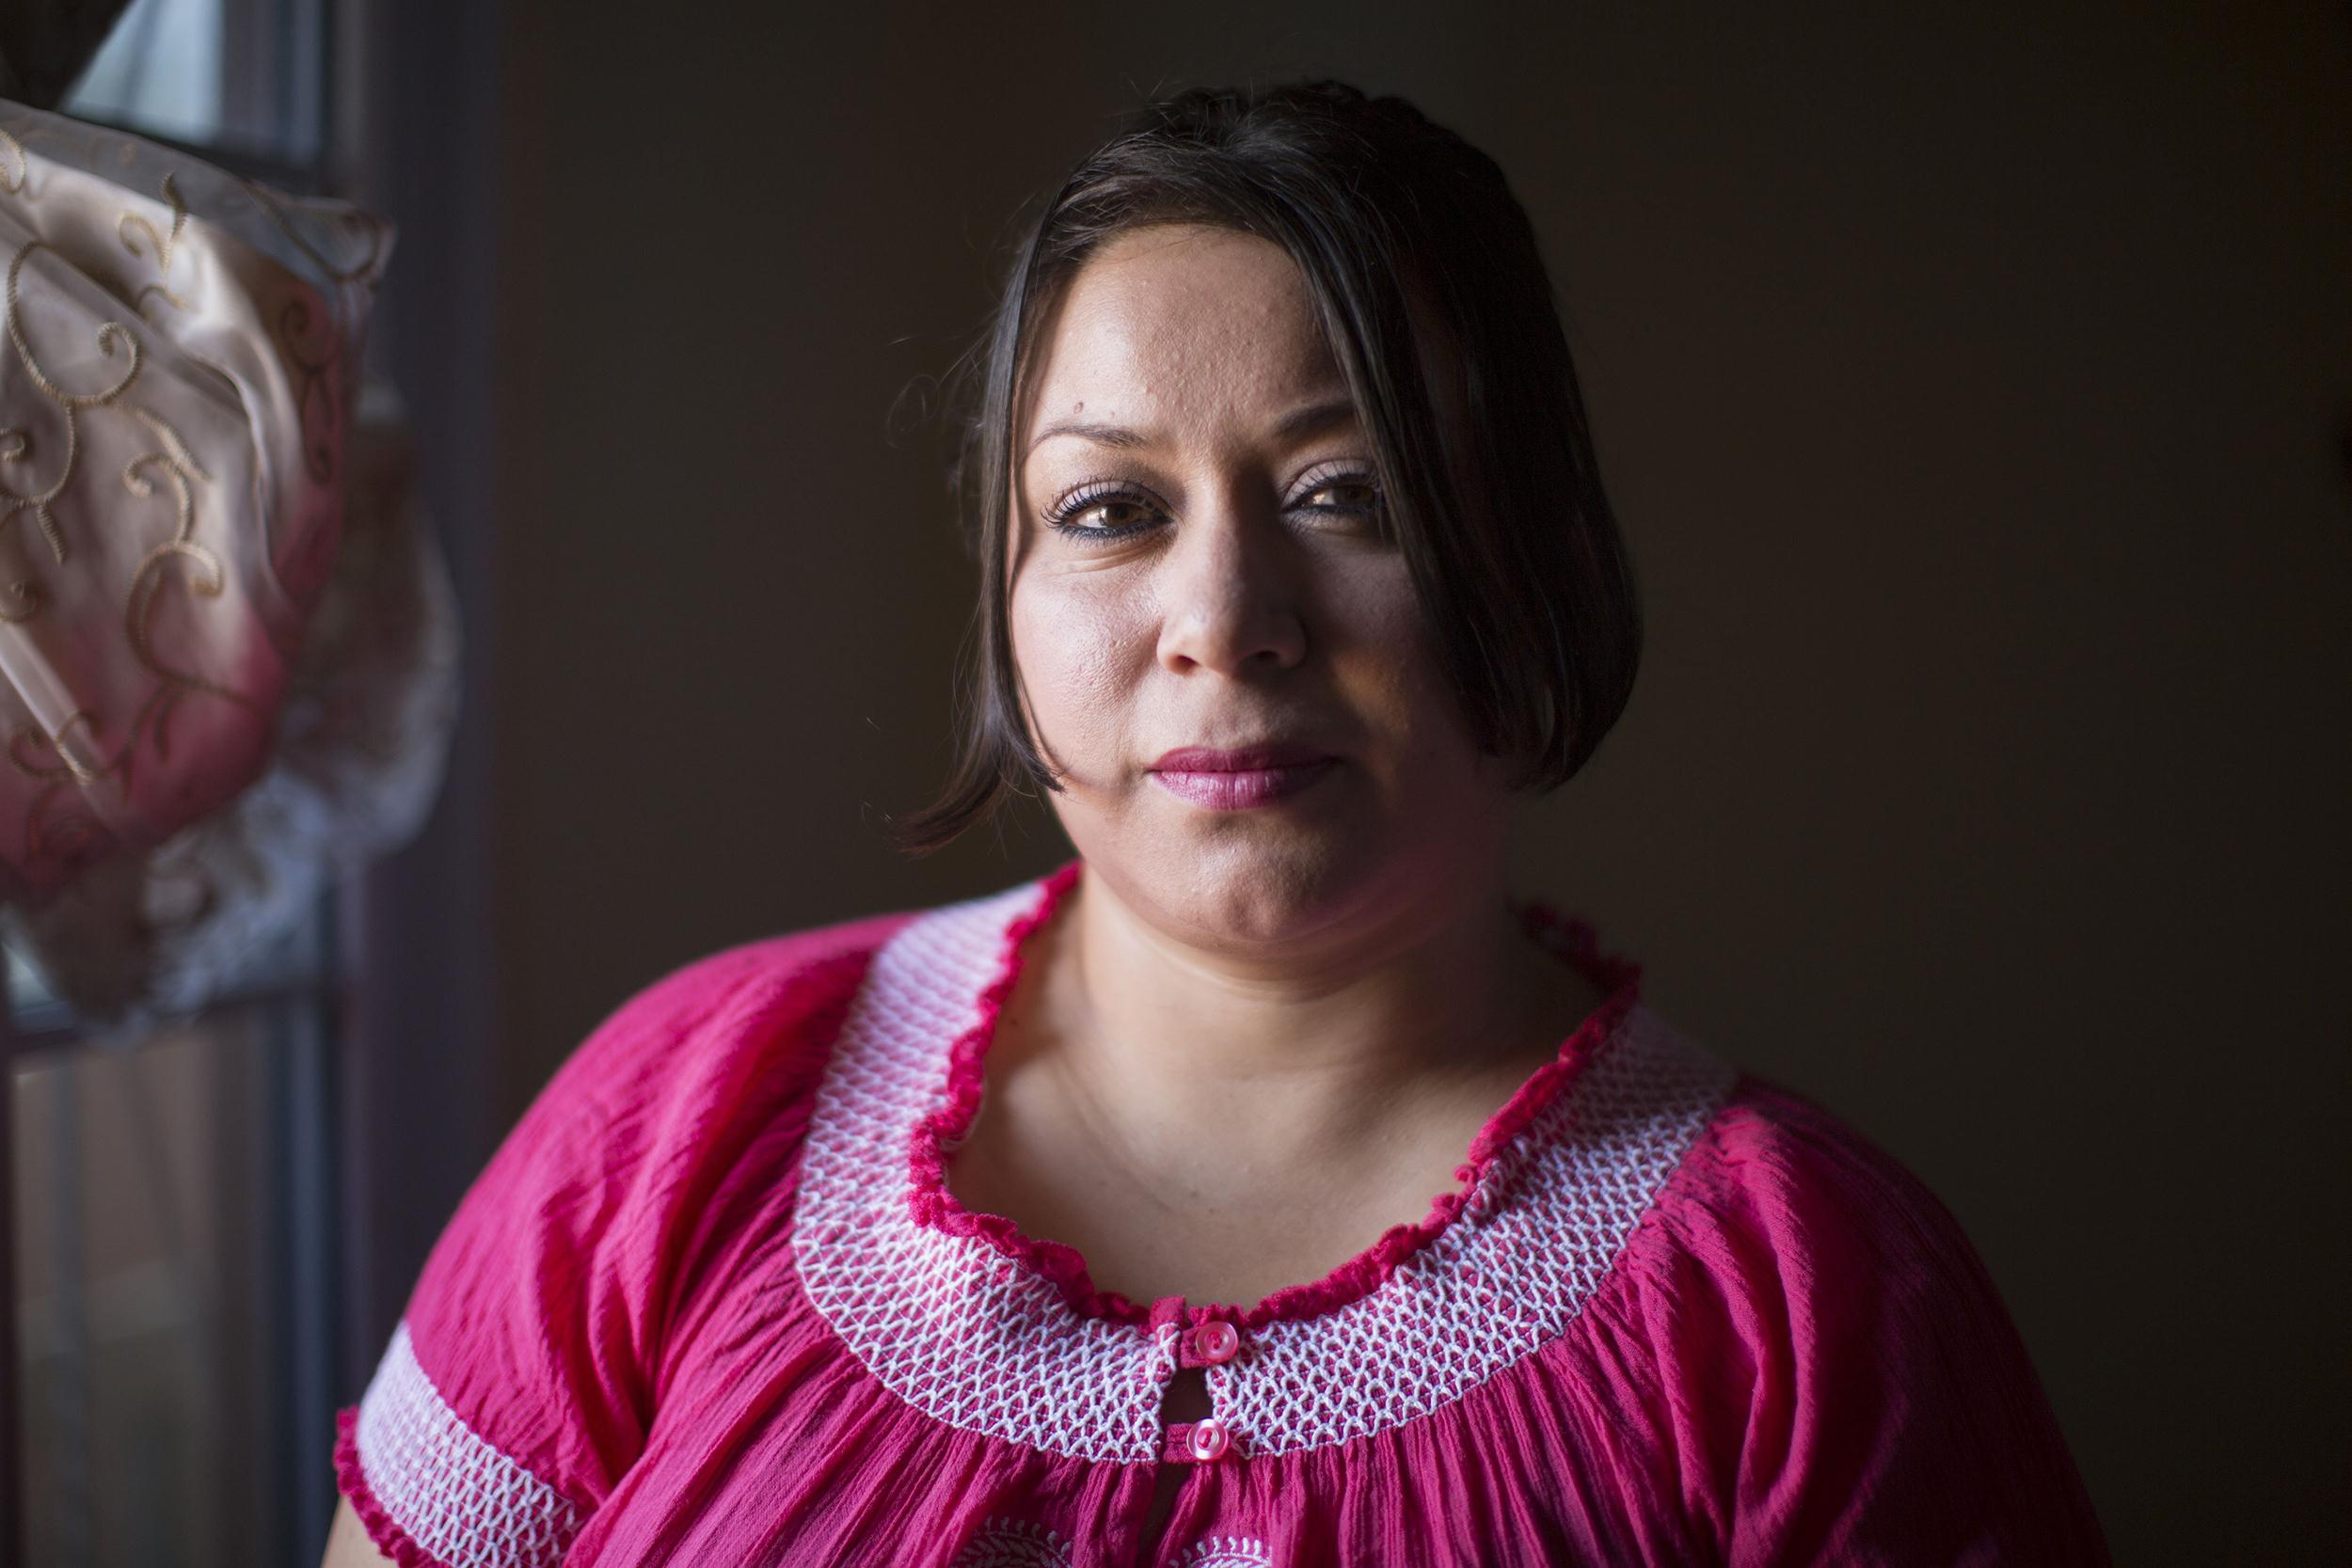 Wrongly Accused of Shaken Baby Abuse: Case Puts Focus on